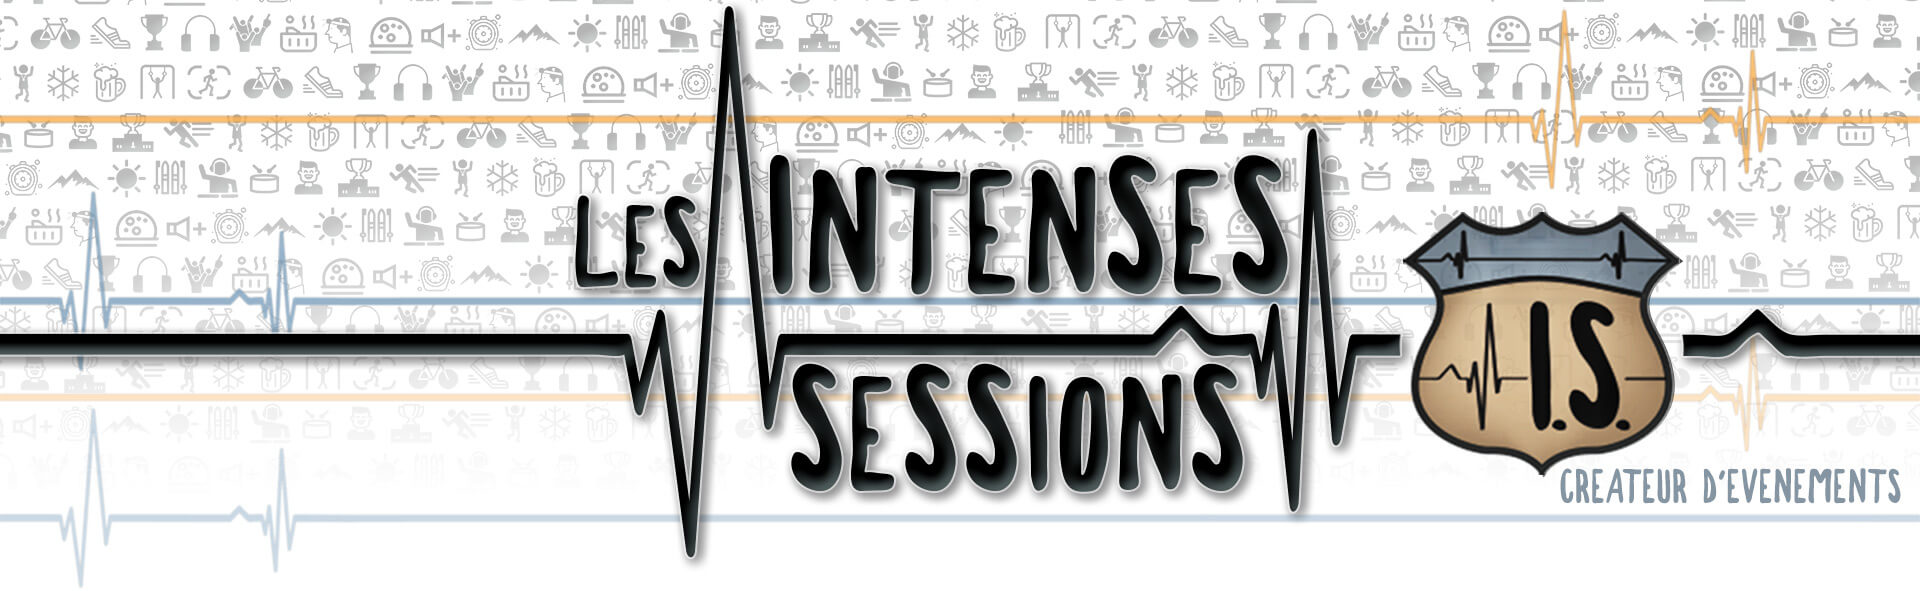 Intenses Sessions